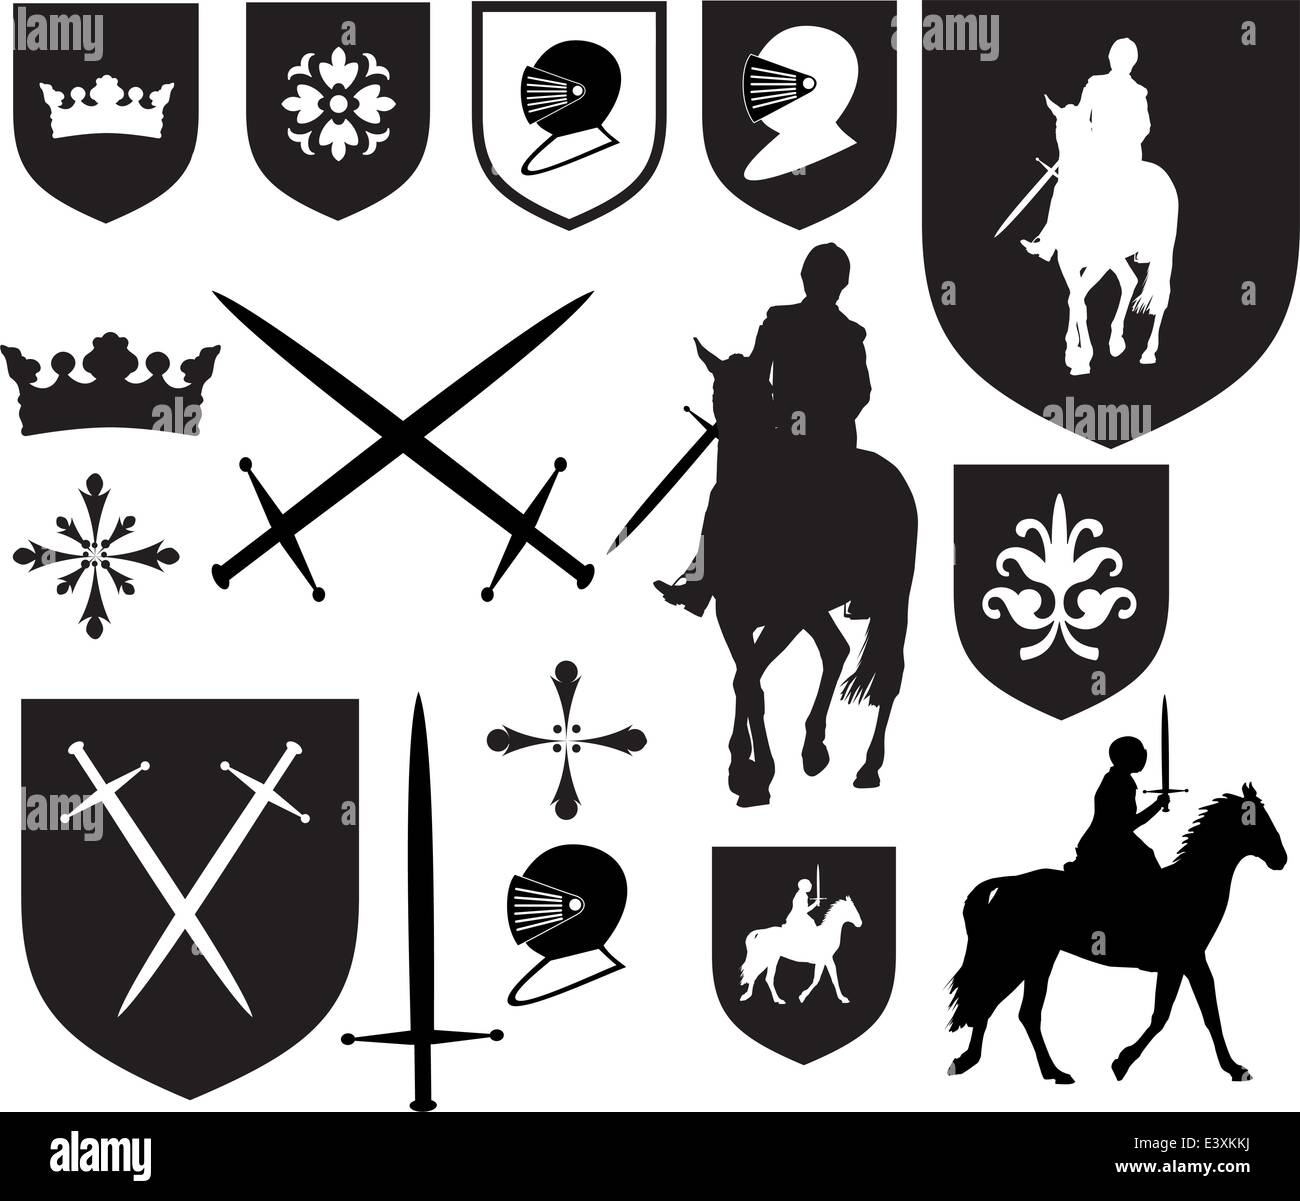 Set of old style medieval icons and symbols stock vector art set of old style medieval icons and symbols biocorpaavc